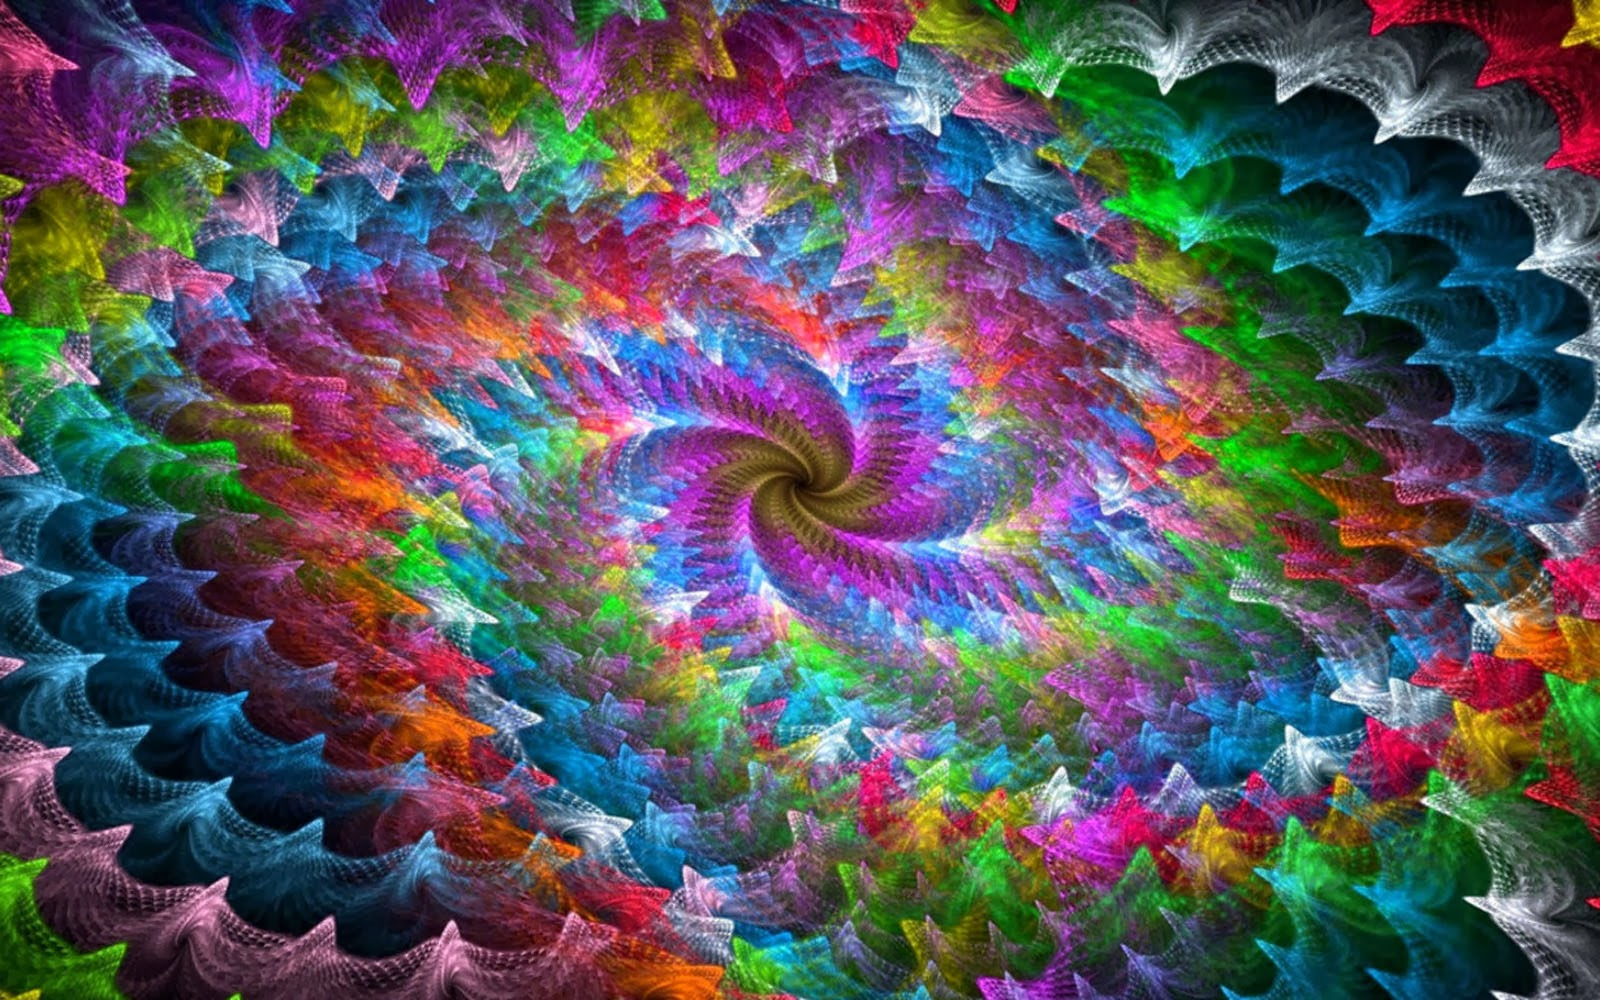 Download Free 3d Wallpapers For Windows 8 Wallpapers Colorful Swirls Wallpapers